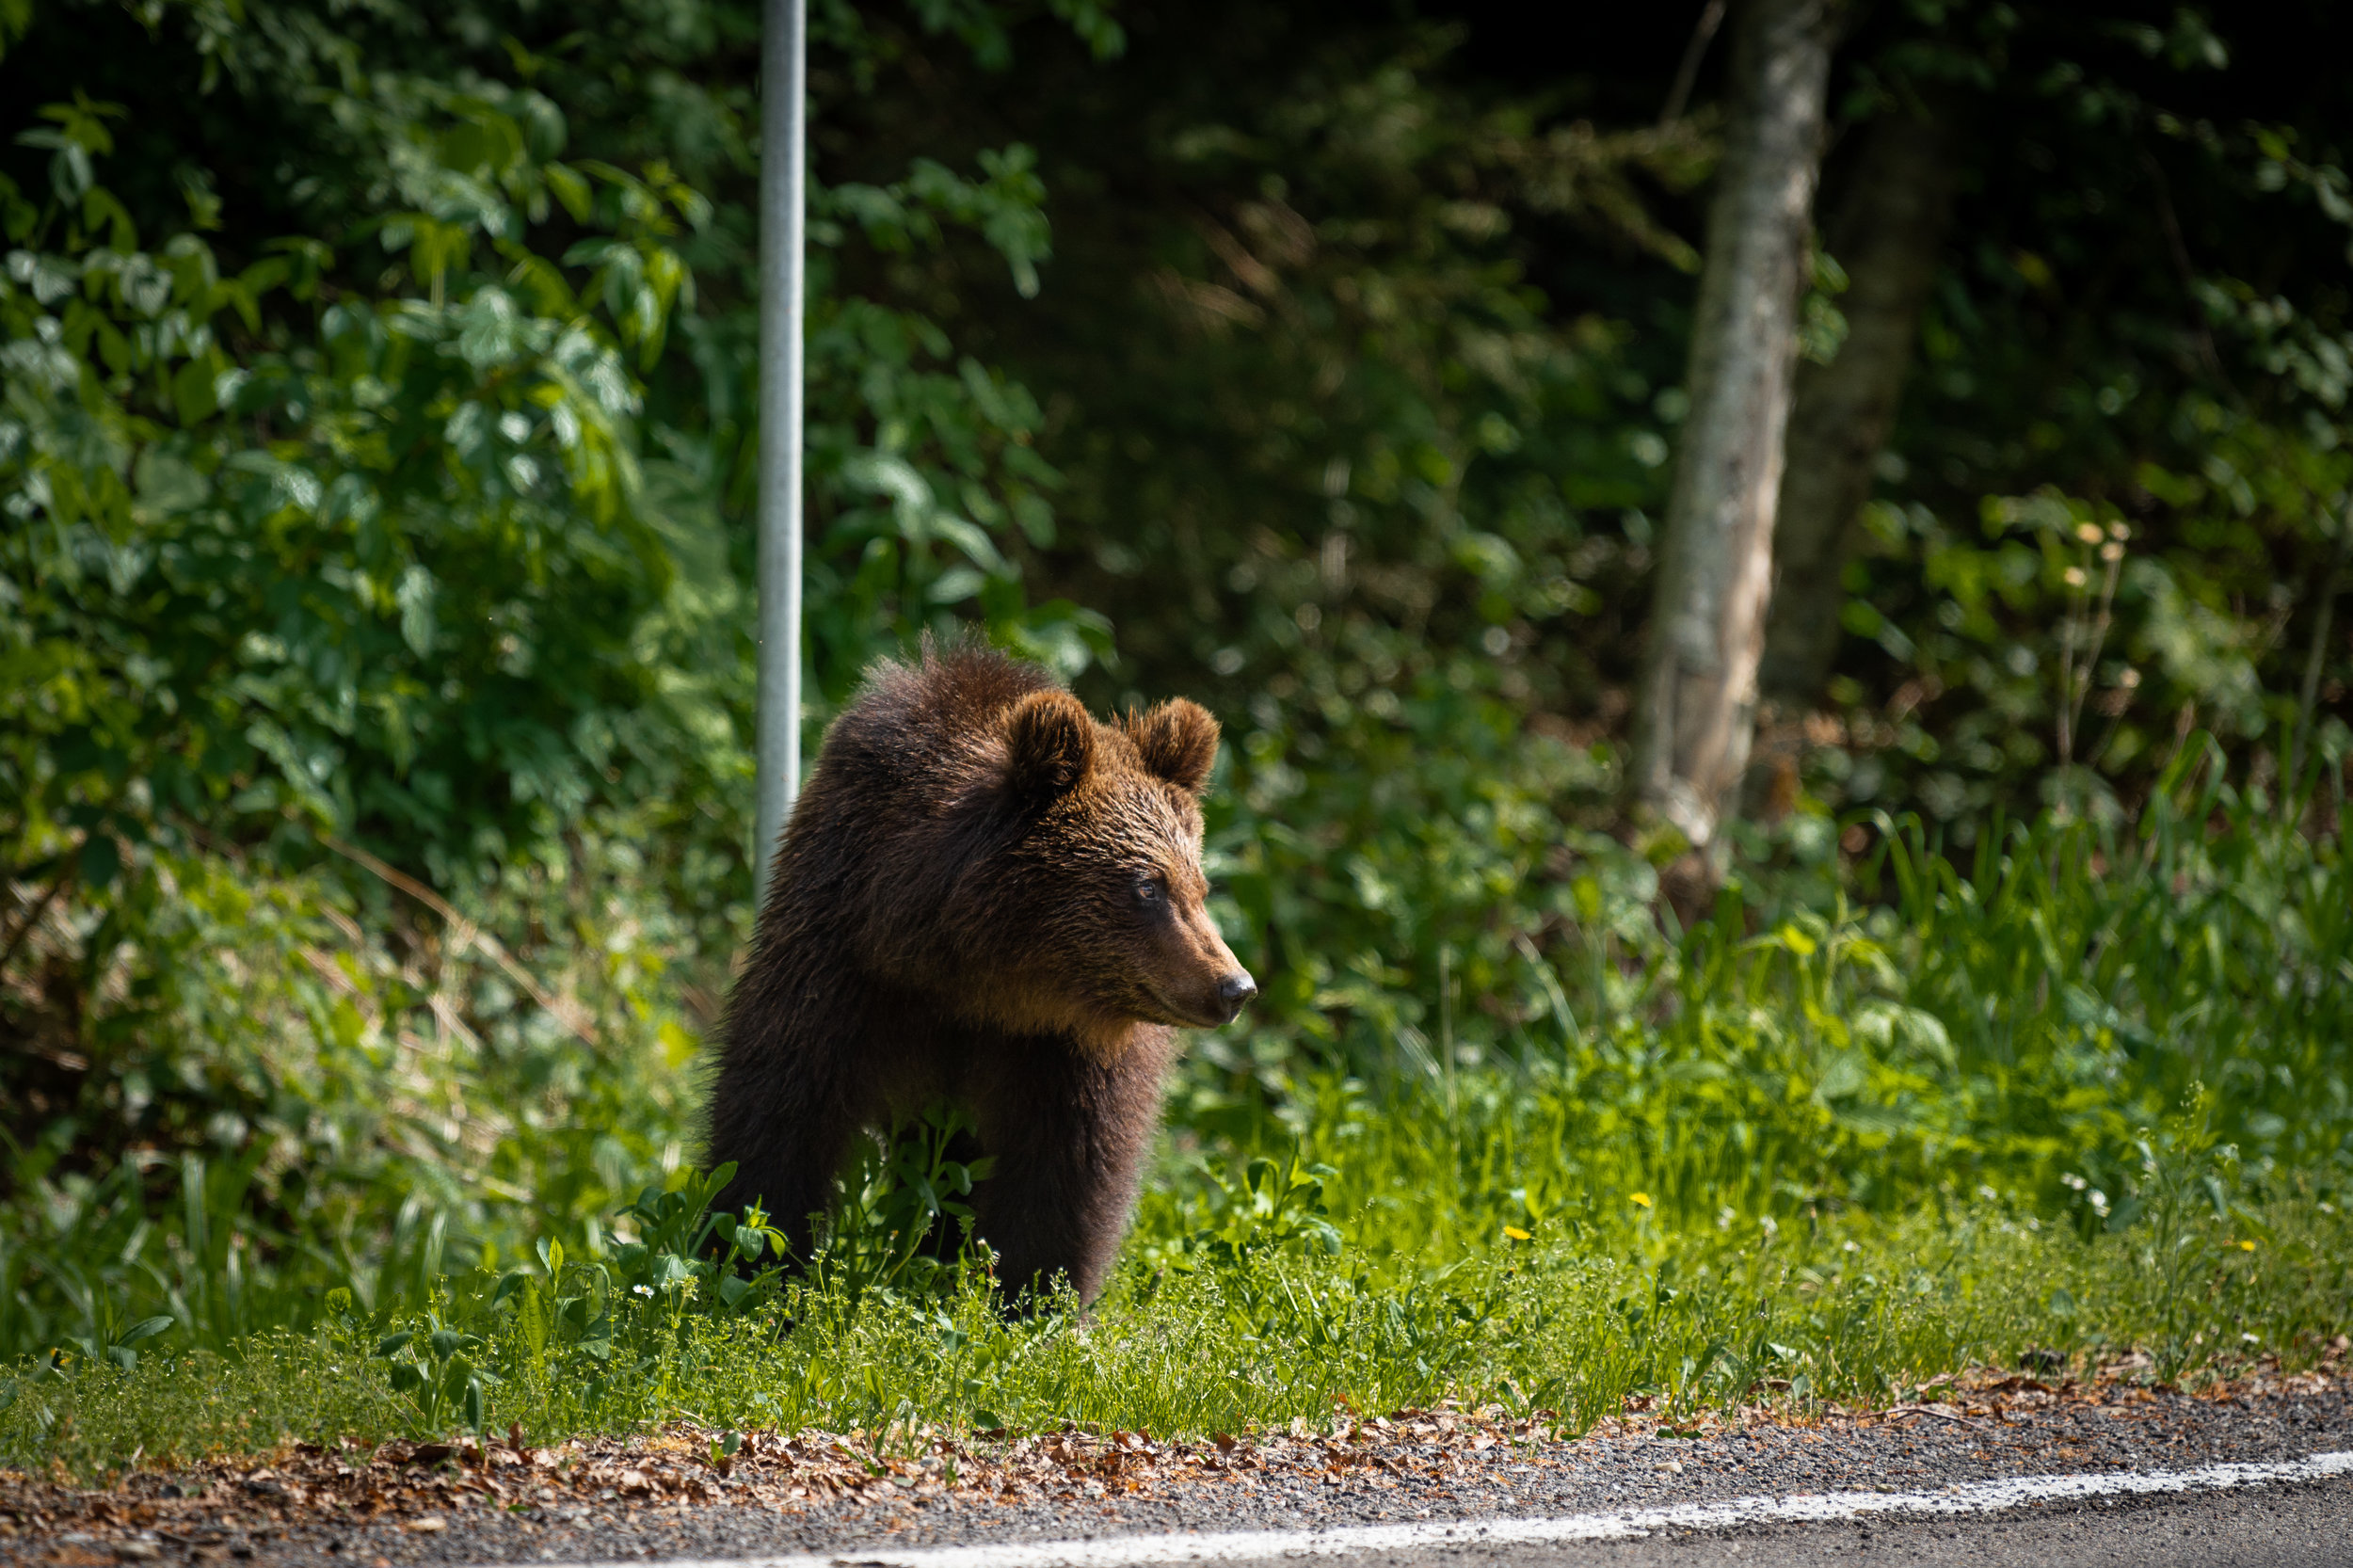 Bear cub on the side of the Fagaras road - April 2018